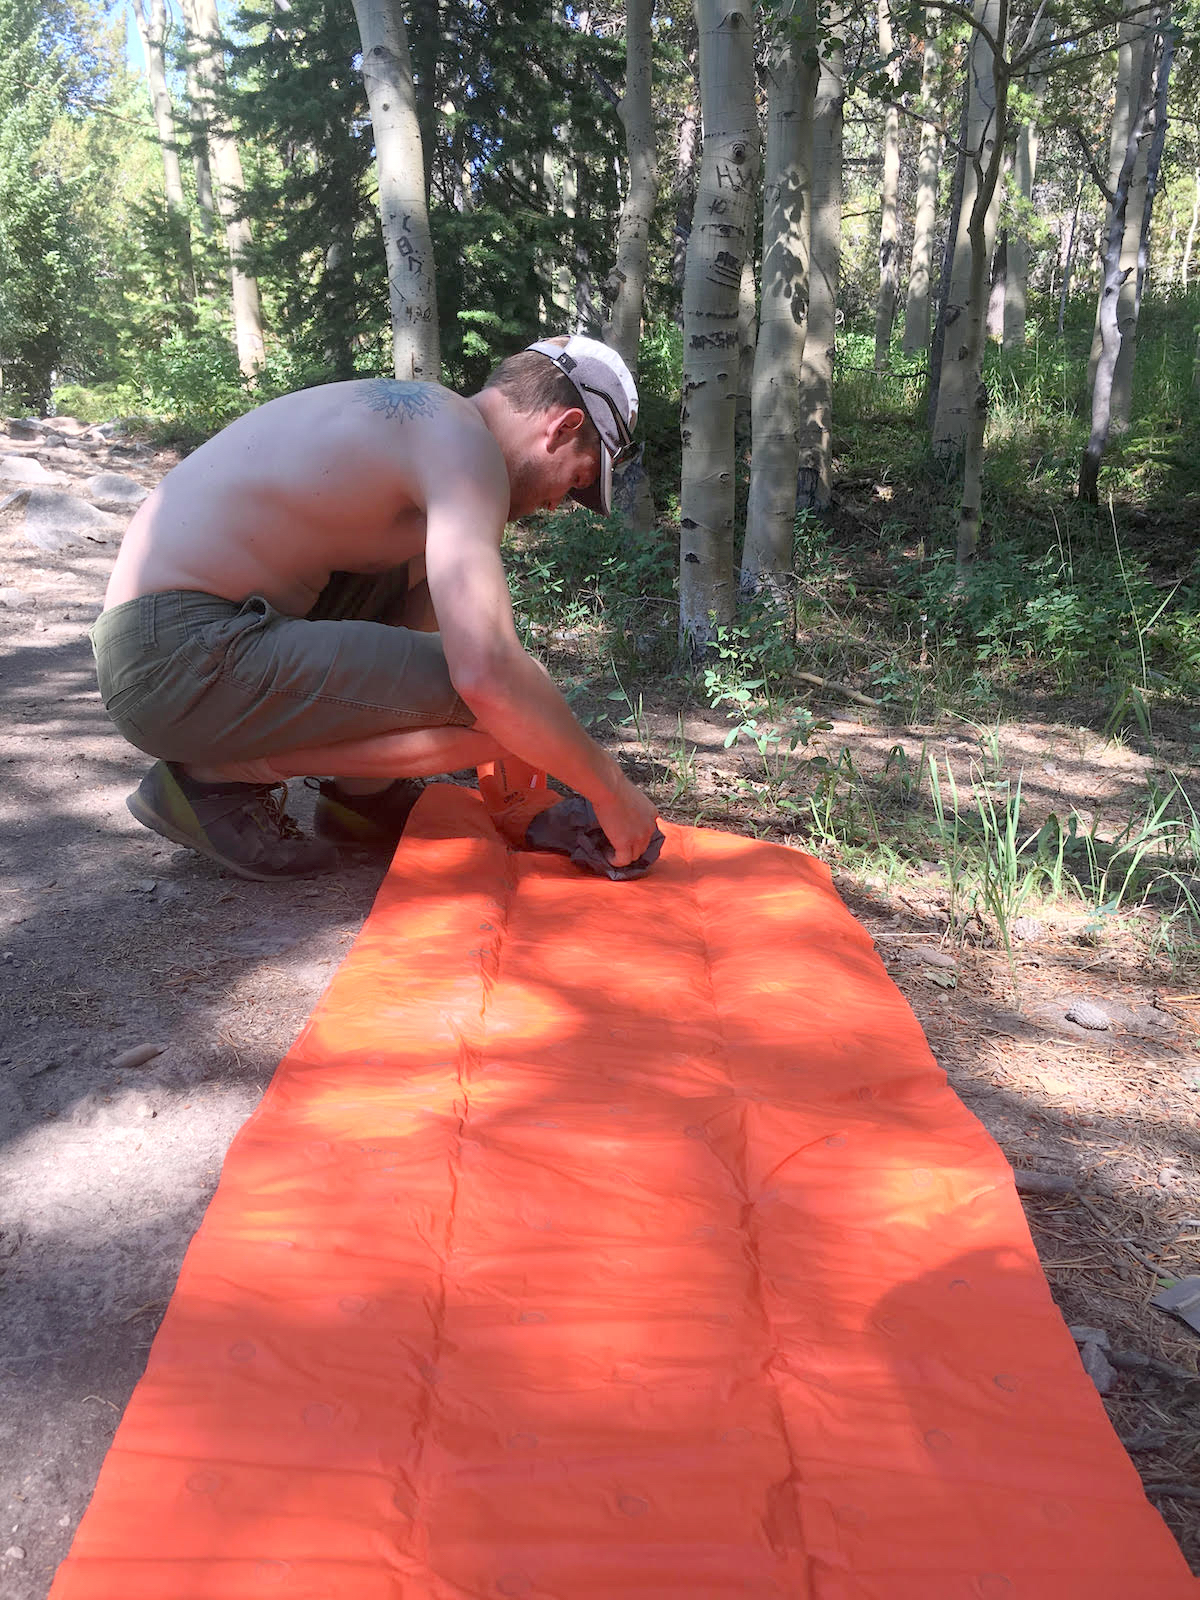 The author setting up the pump sack for the Sea to Summit Ultralight Air Mat. After a small amount of practice, three pumps are plenty to inflate the mattress. [Photo] Amanda Franz